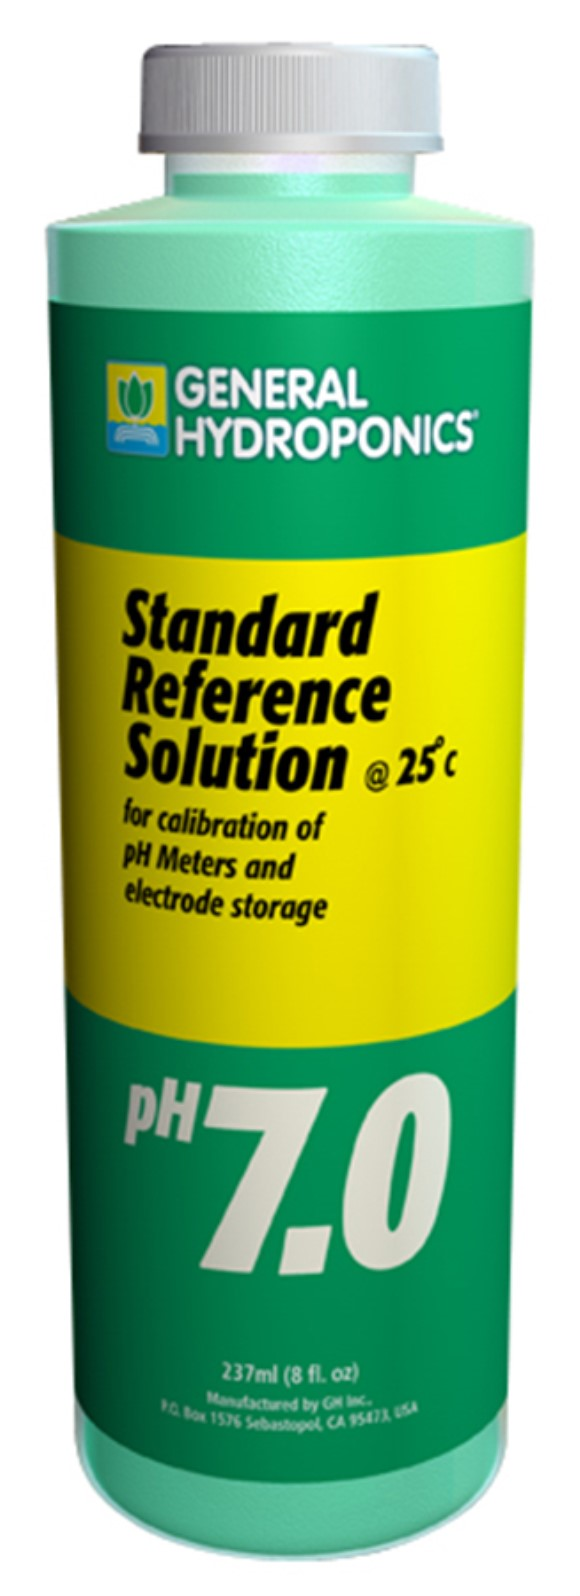 GH pH 7.01 Calibration Solution